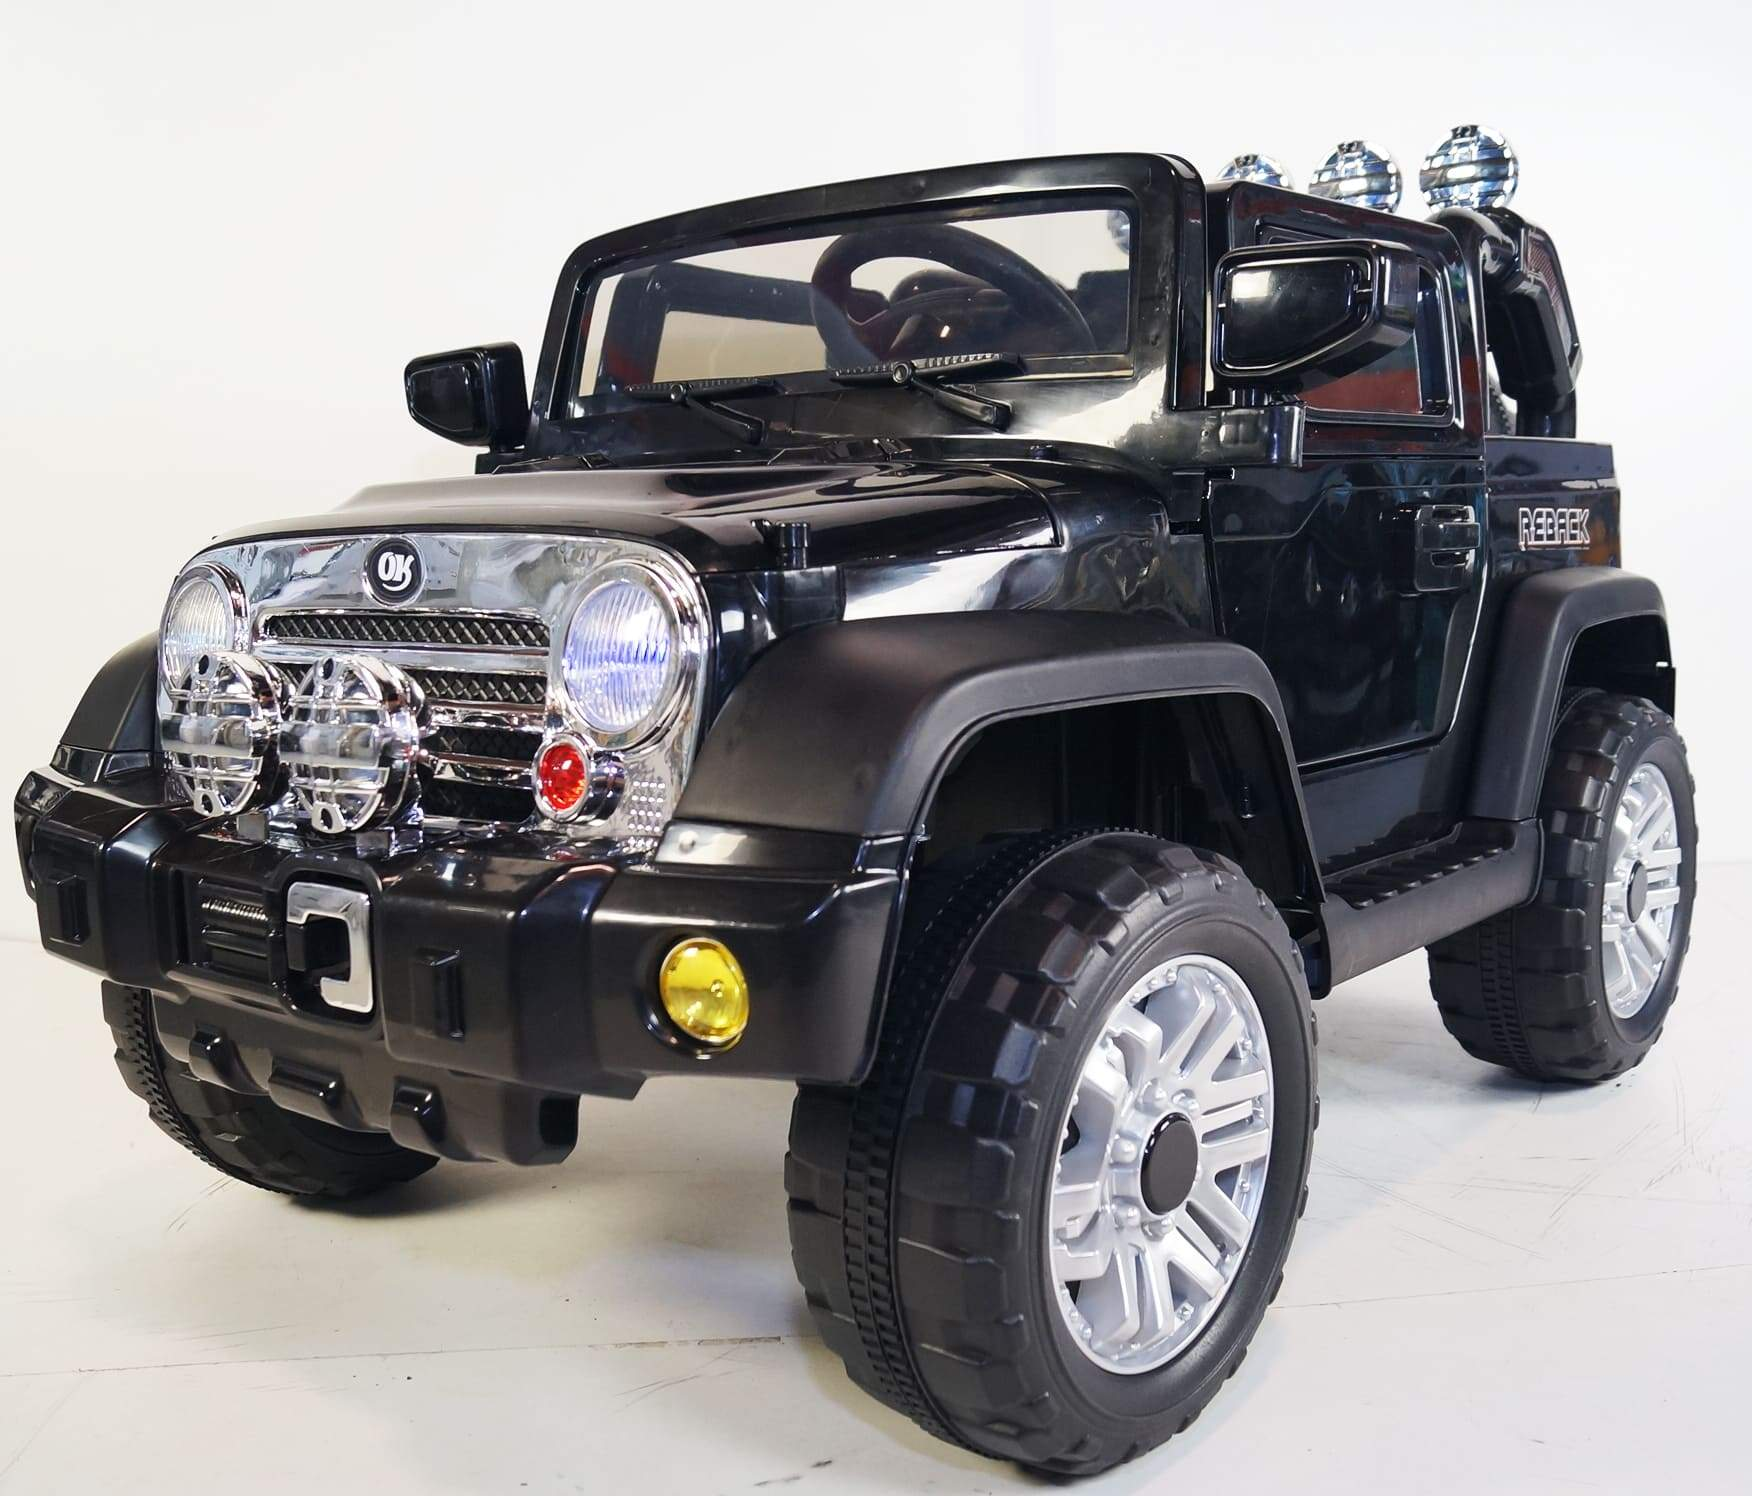 Classic JEEP INSPIRED 12v RIDE-ON KIDS CAR | Black Cars & SUVs Mini Motos